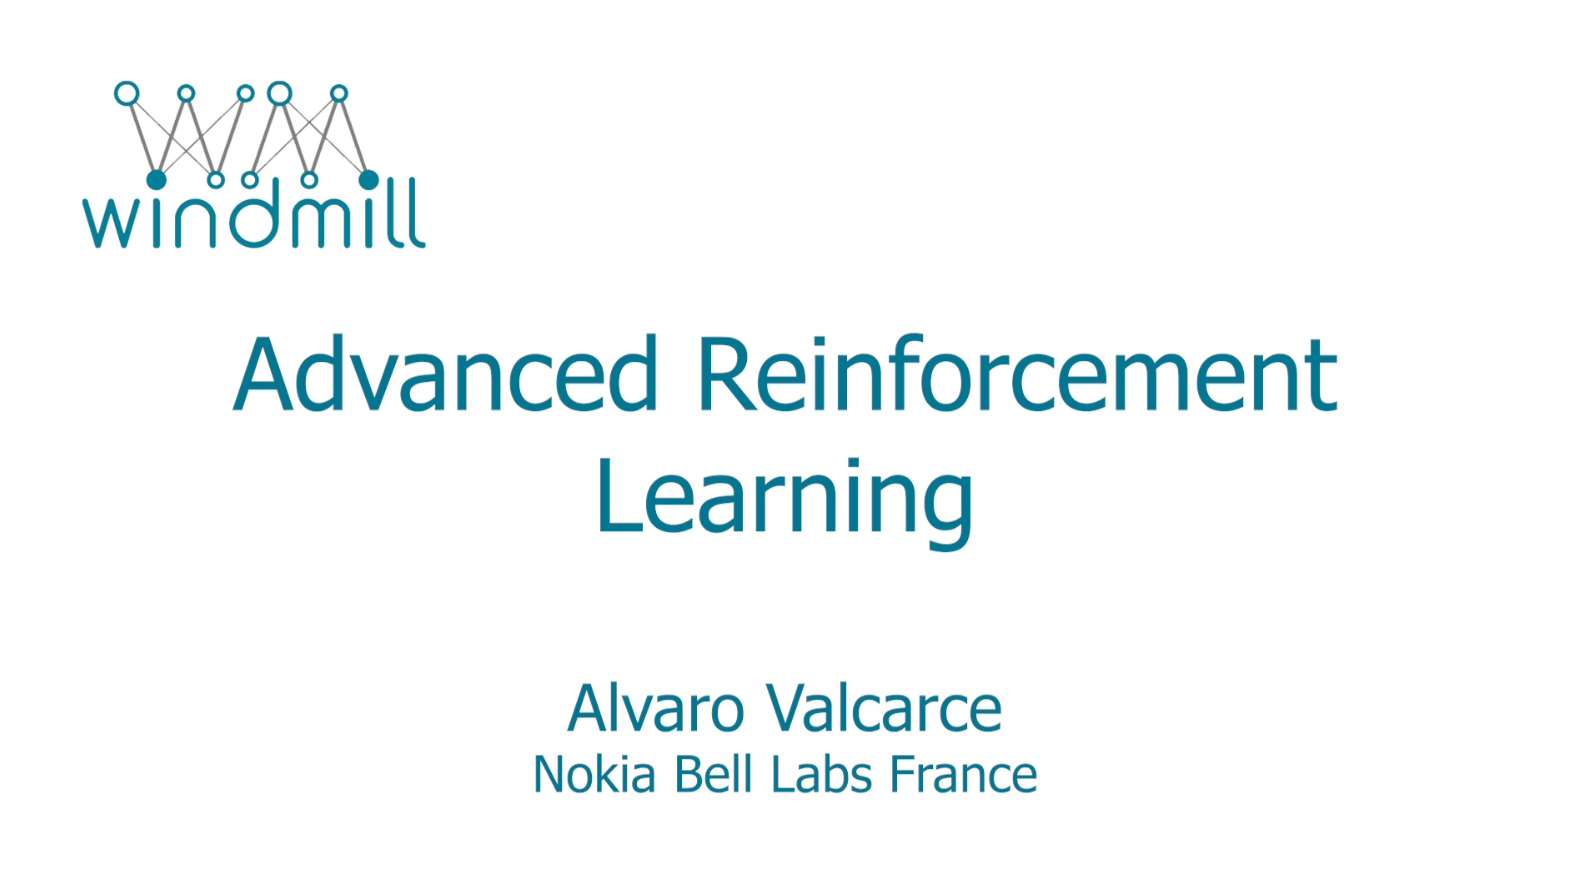 Advanced Reinforcement Learning